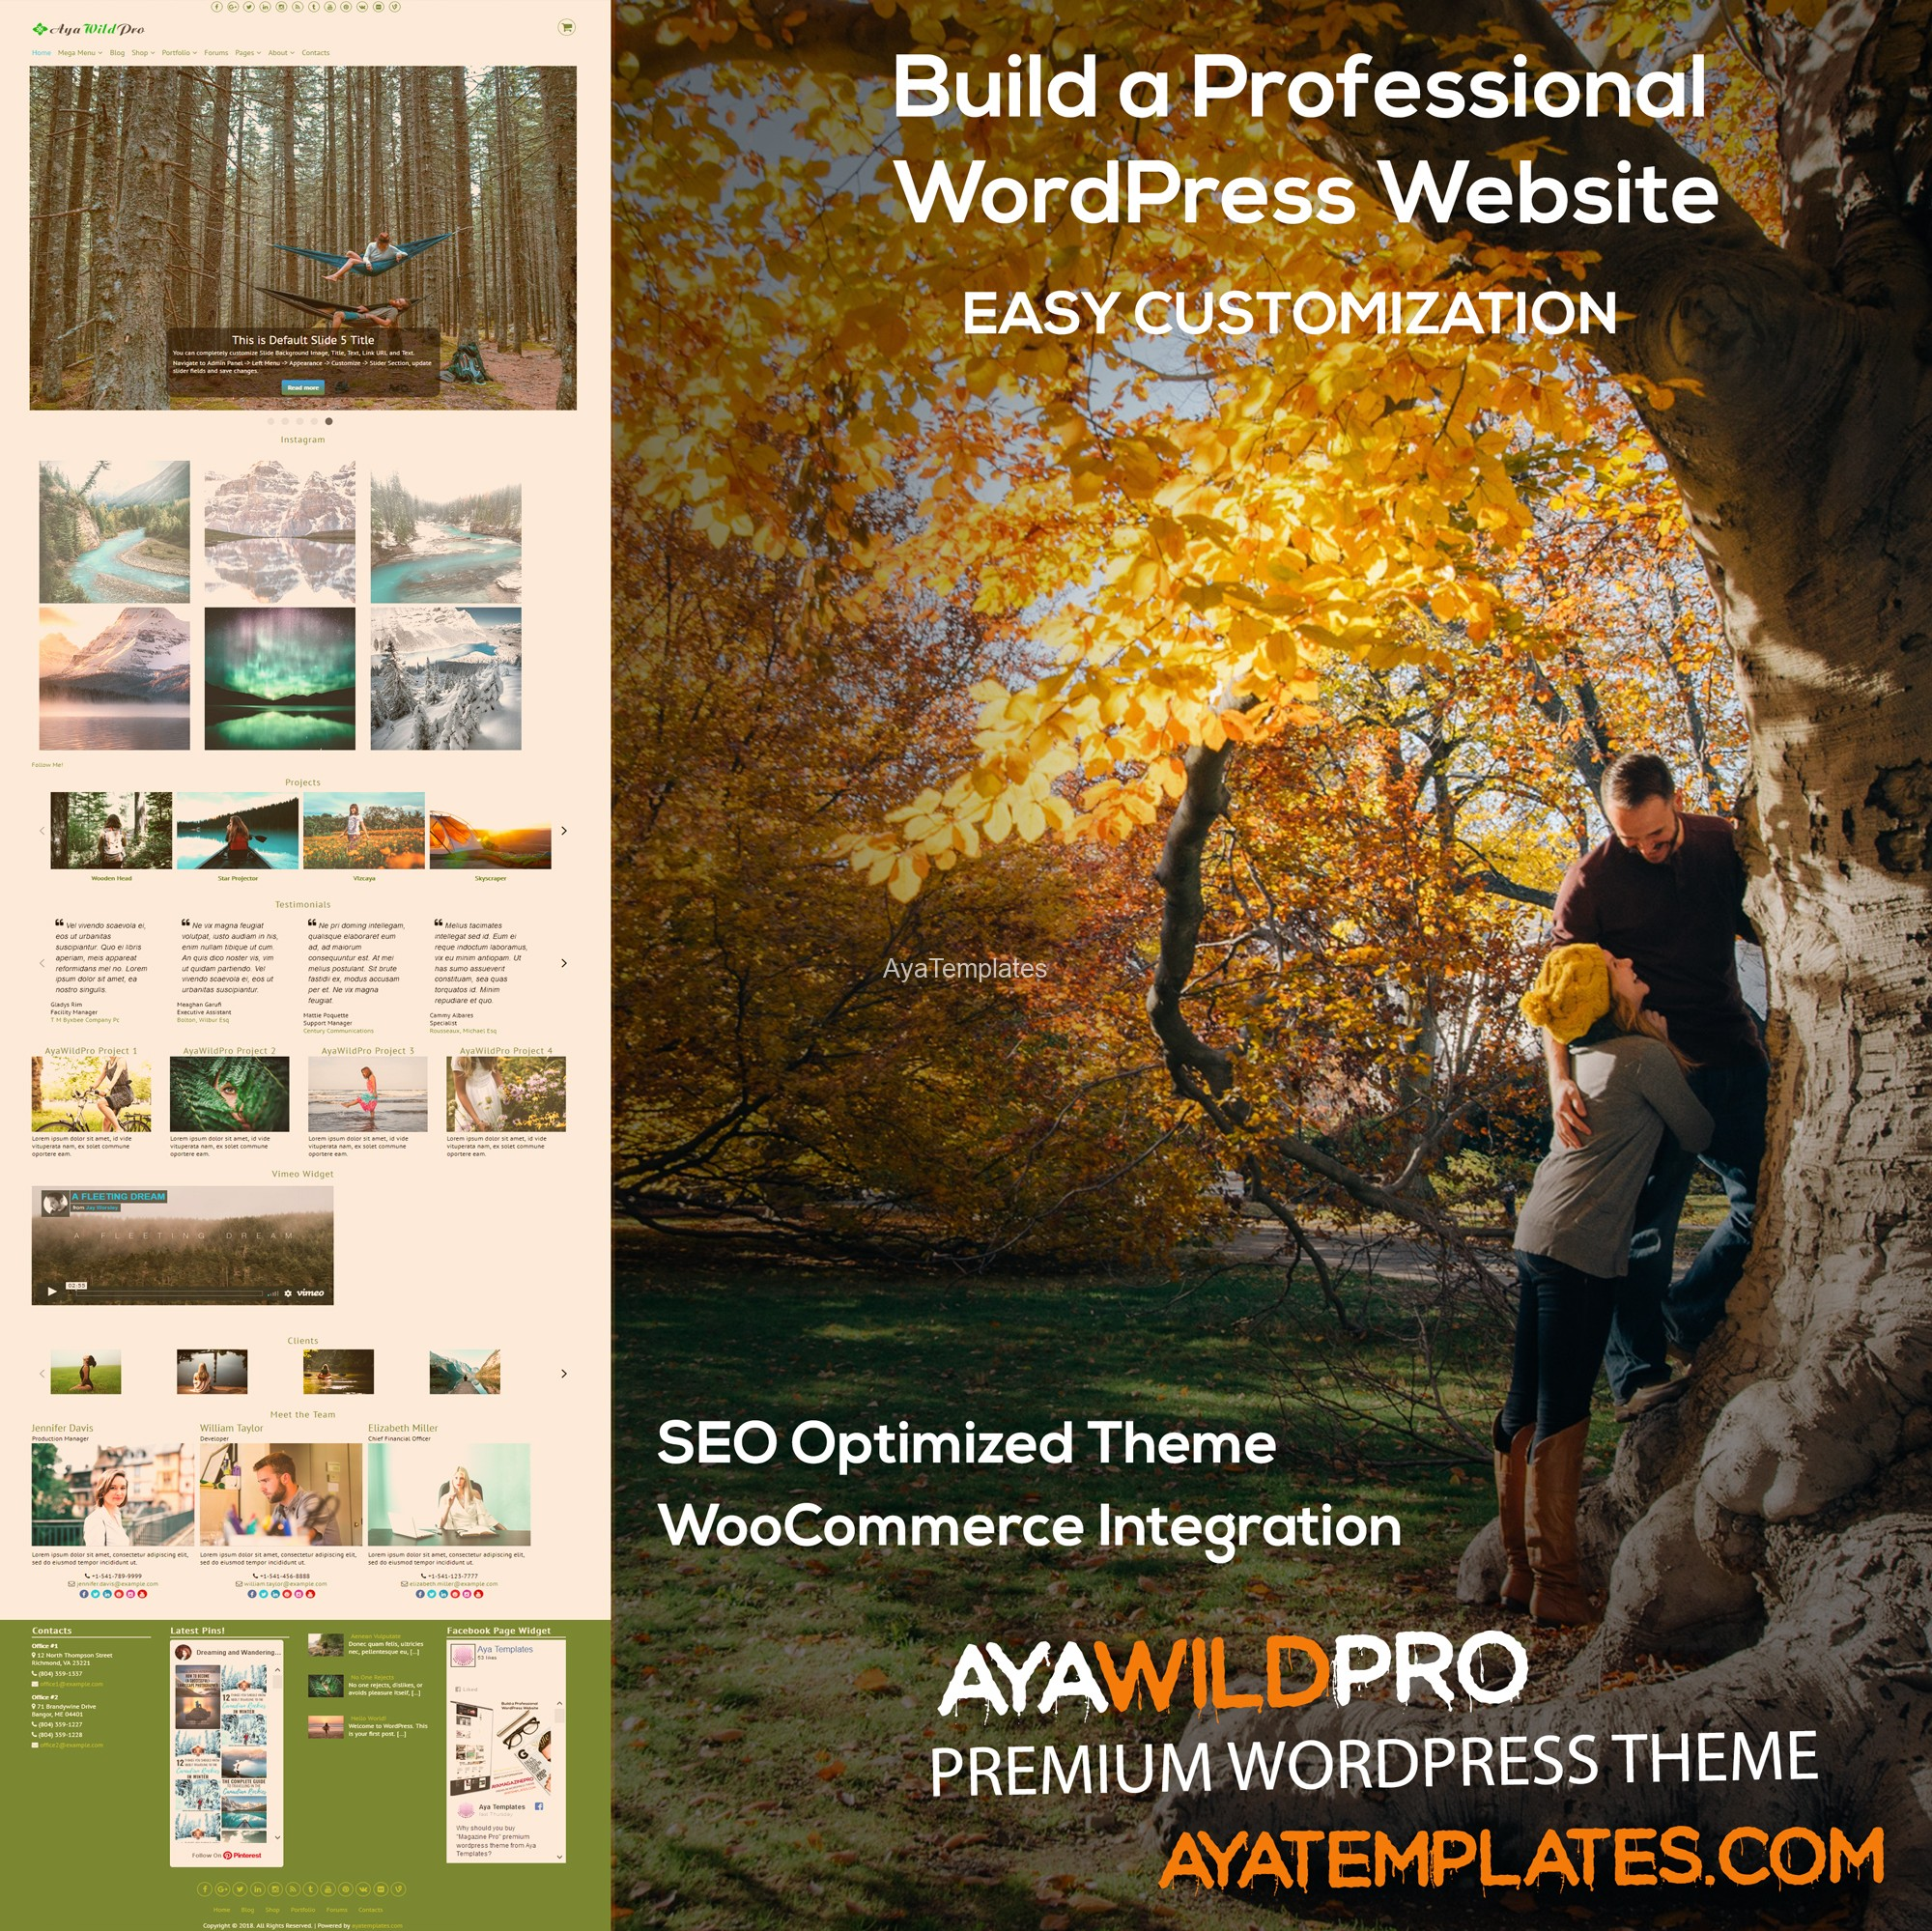 AyaWildPro-premium-wordpress-theme-mockup-collage-autumn-scheme-color